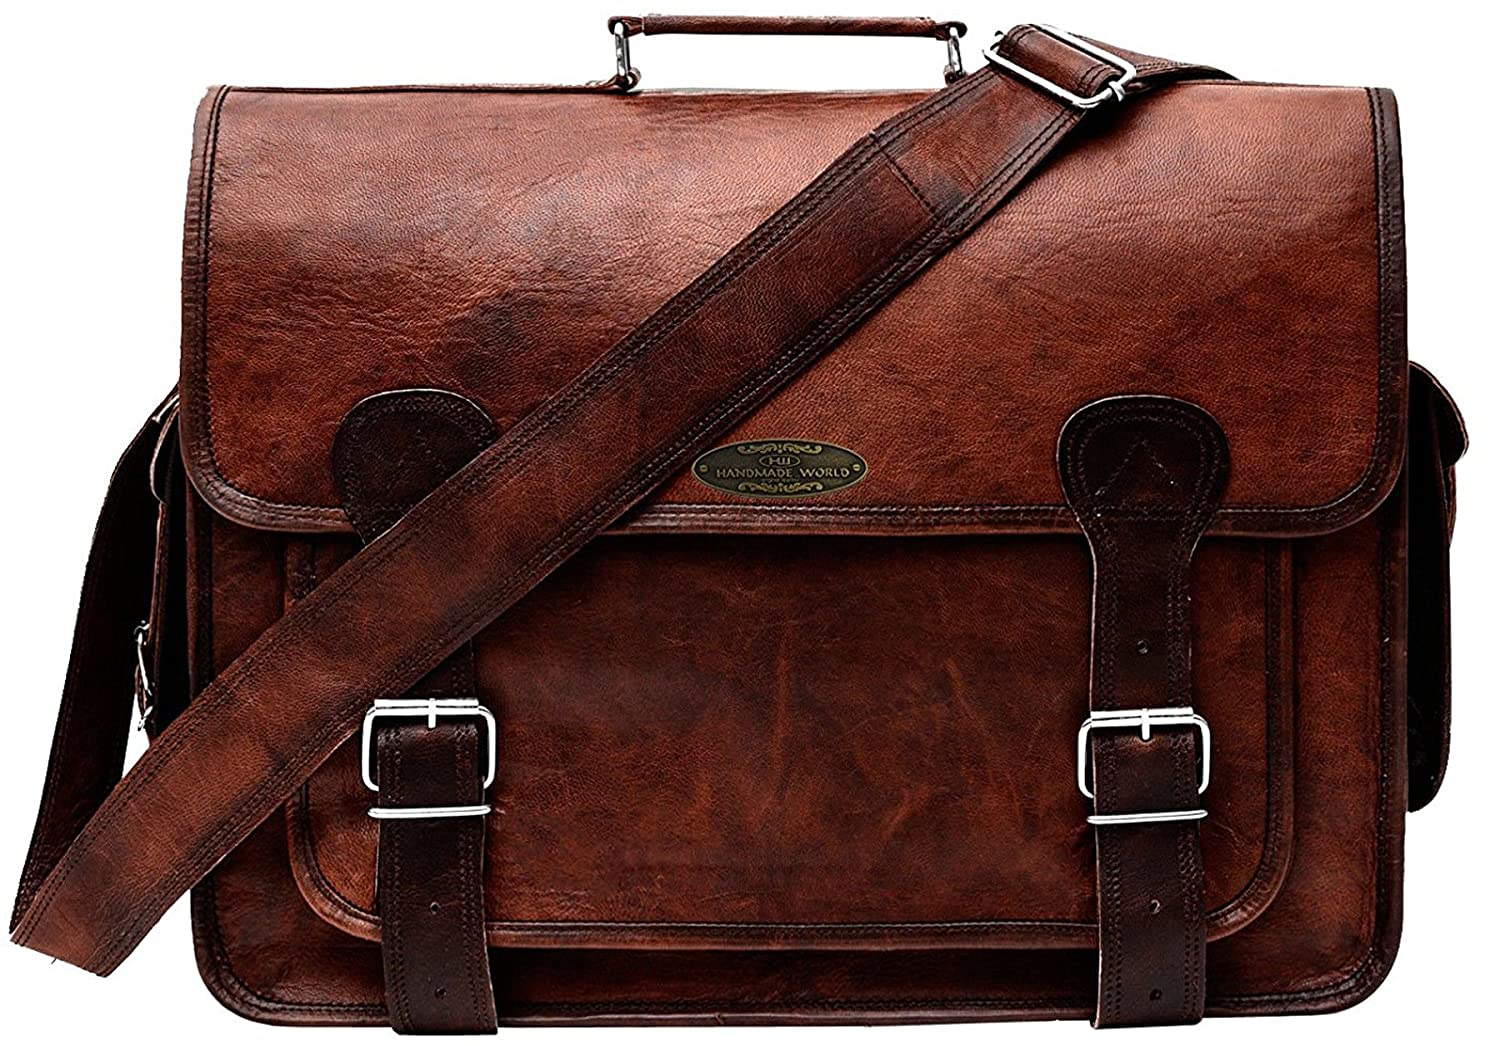 10528a0ab692 Handmade World Brown Leather Messenger Bag for Men 18 inch Big Women  Shoulder Cross Body Brown Laptop Computer Briefcase Bag - Best Vintage Look